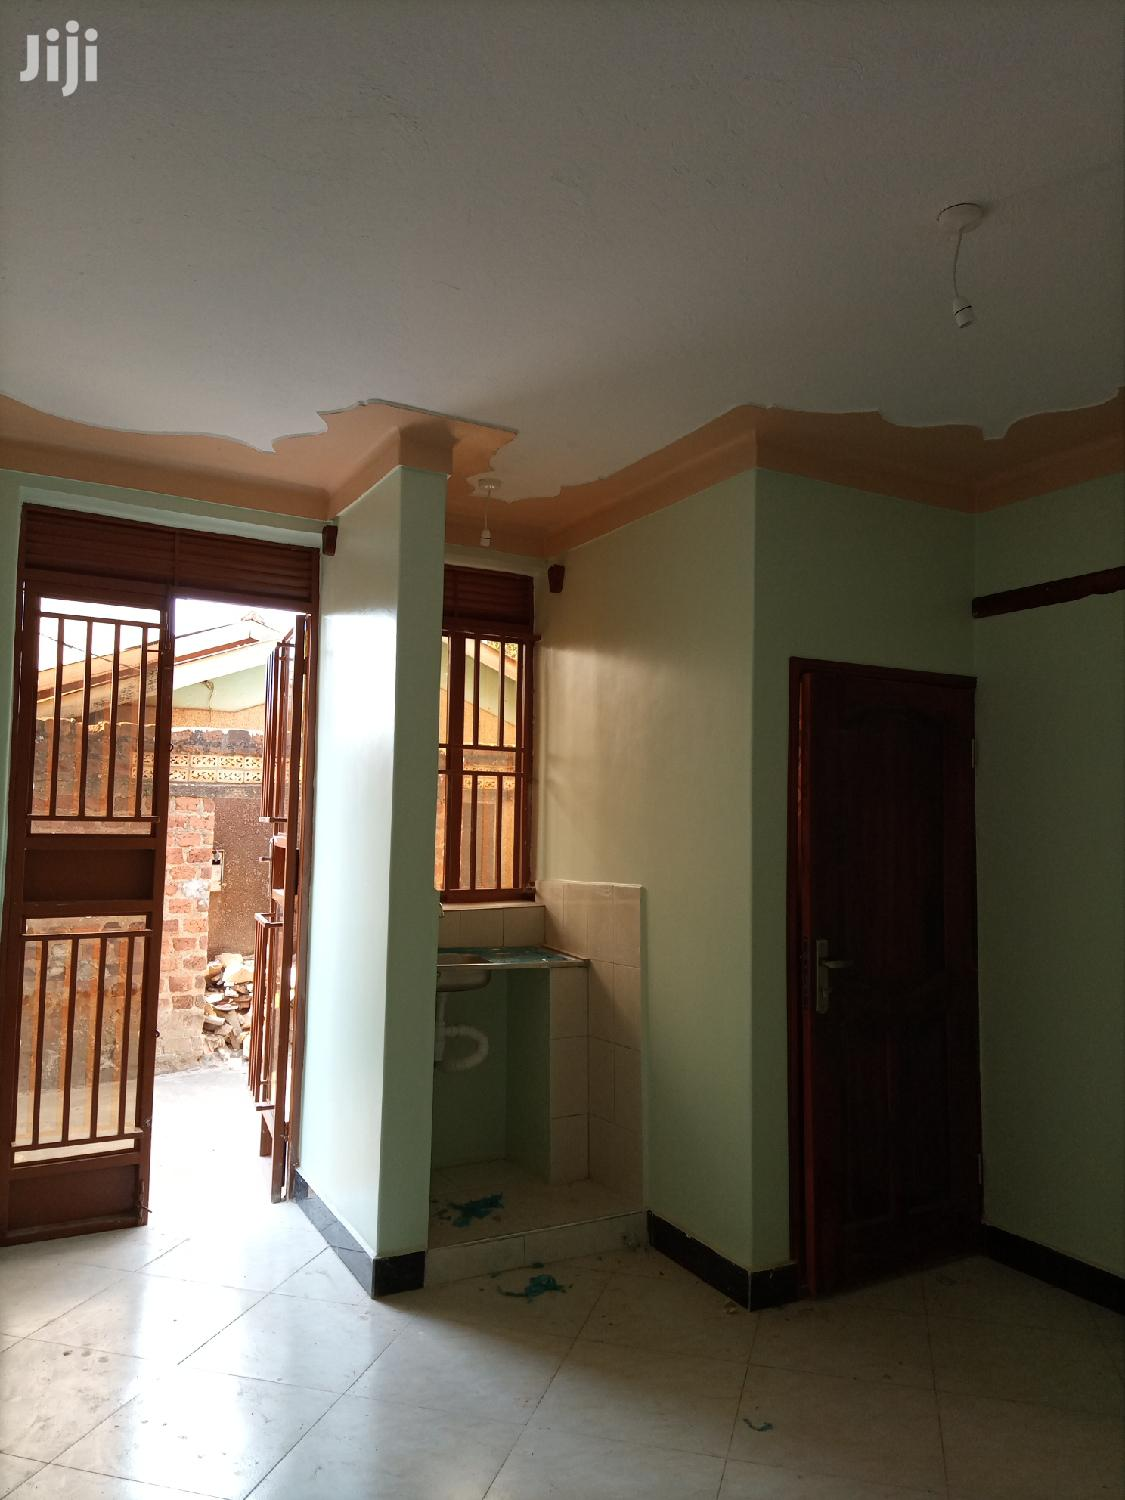 Kawempe Single Room Self Contained for Rent | Houses & Apartments For Rent for sale in Kampala, Central Region, Uganda